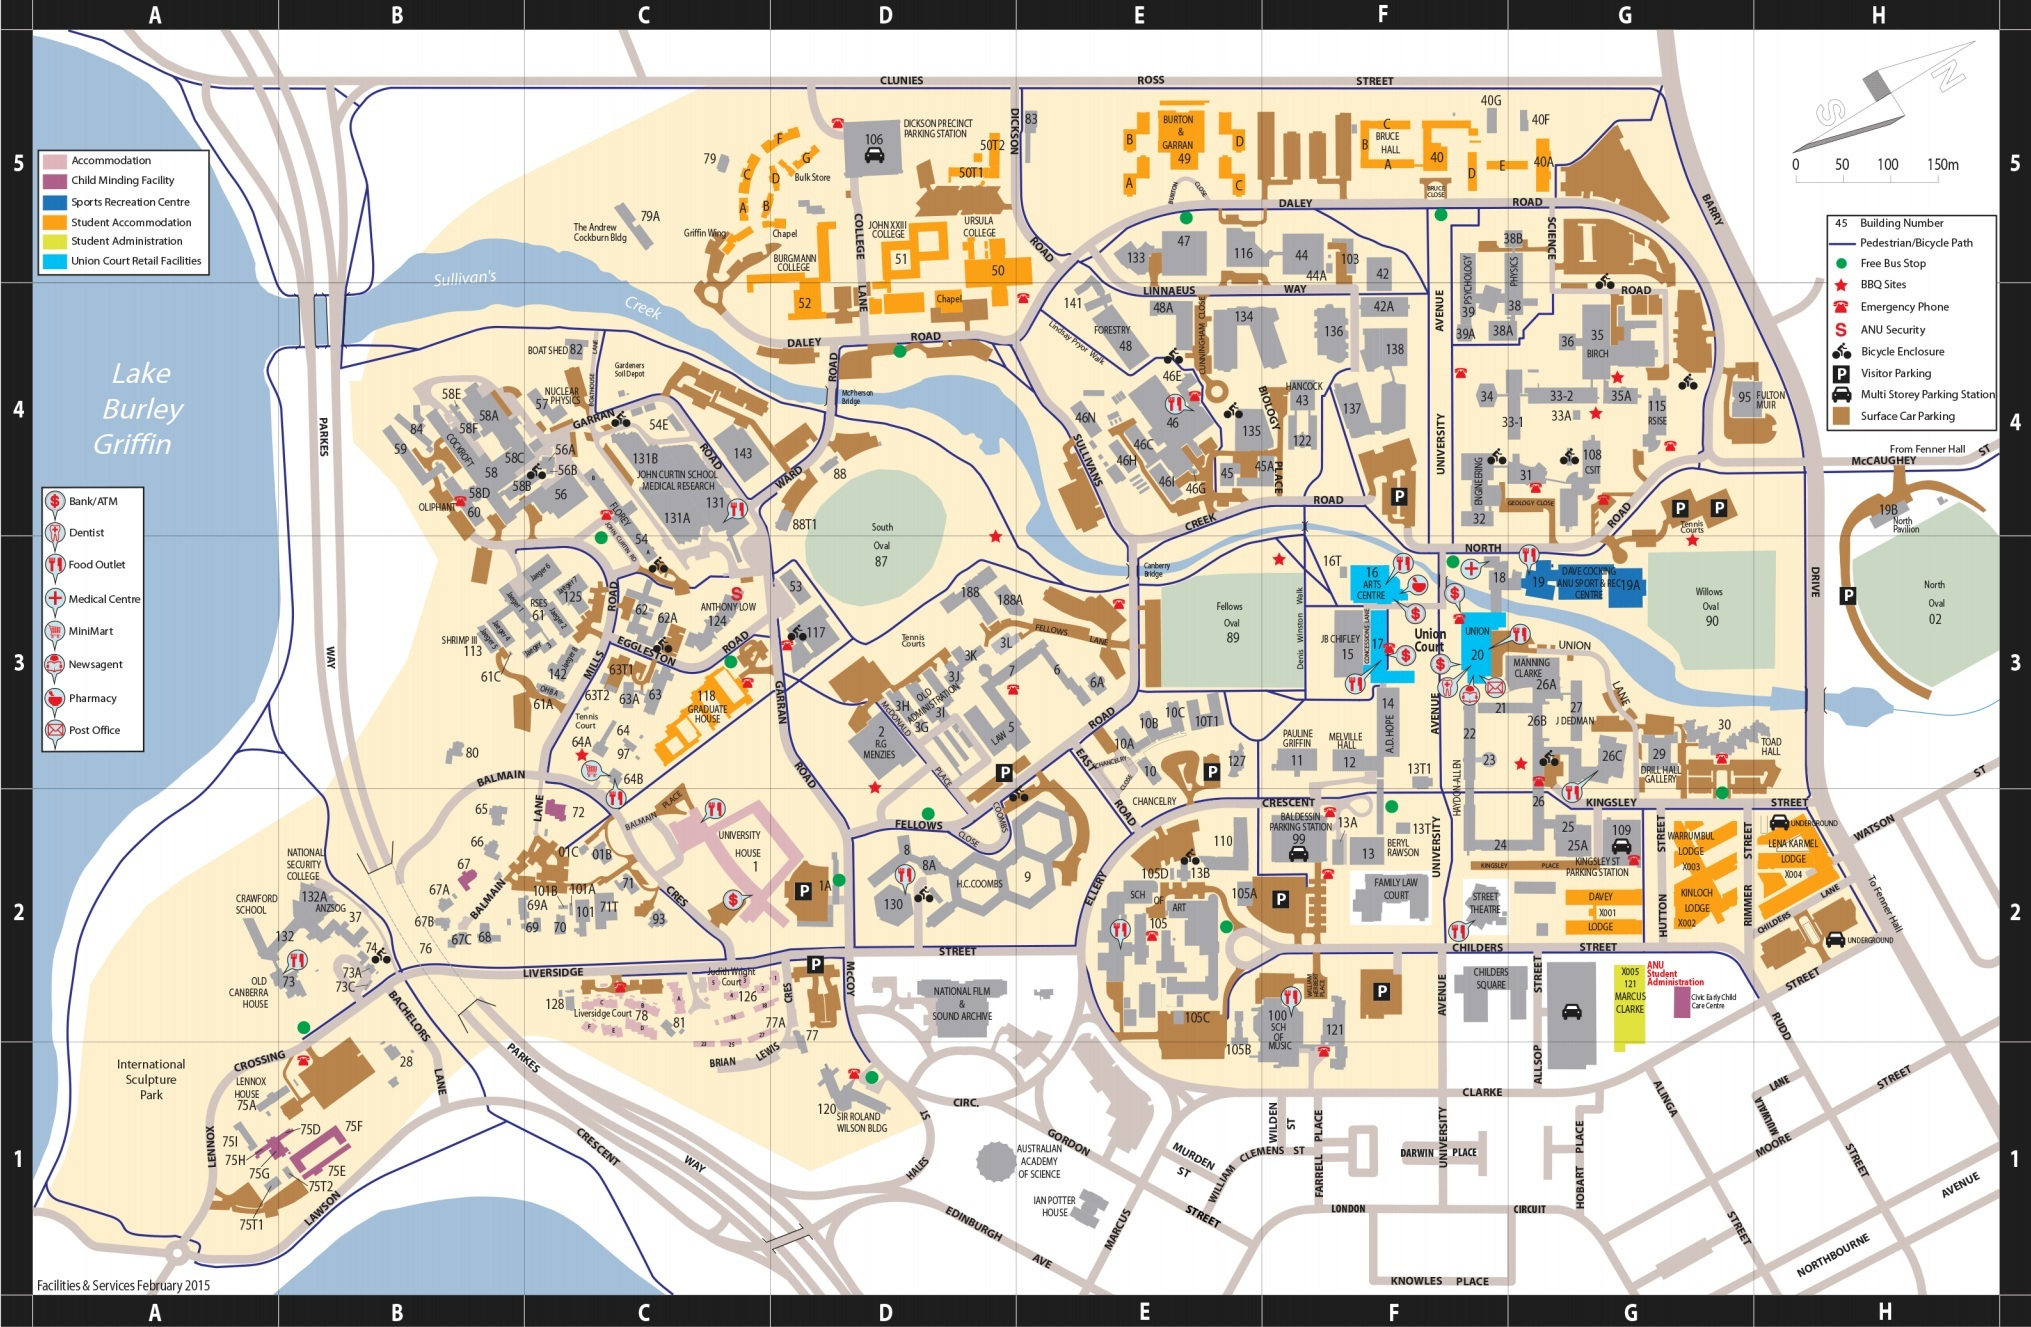 Anu Campus Map Map Of Anu | International Map